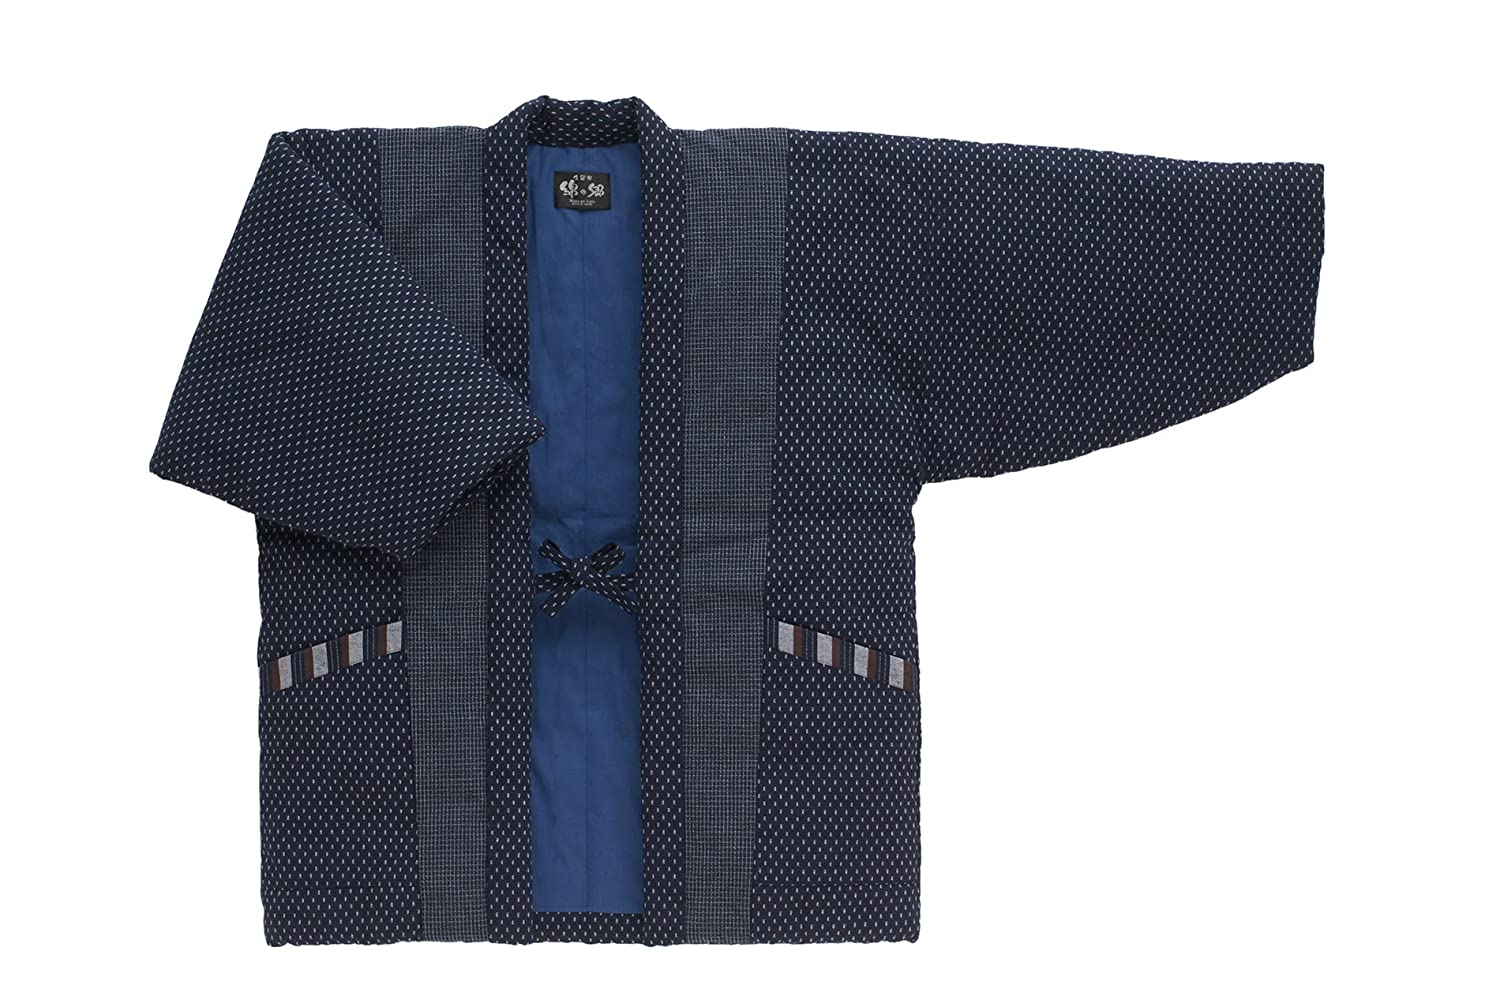 WATANOSATO Hail pattern Hanten (Cotton jacket made in Japan Kimono-style) Men's